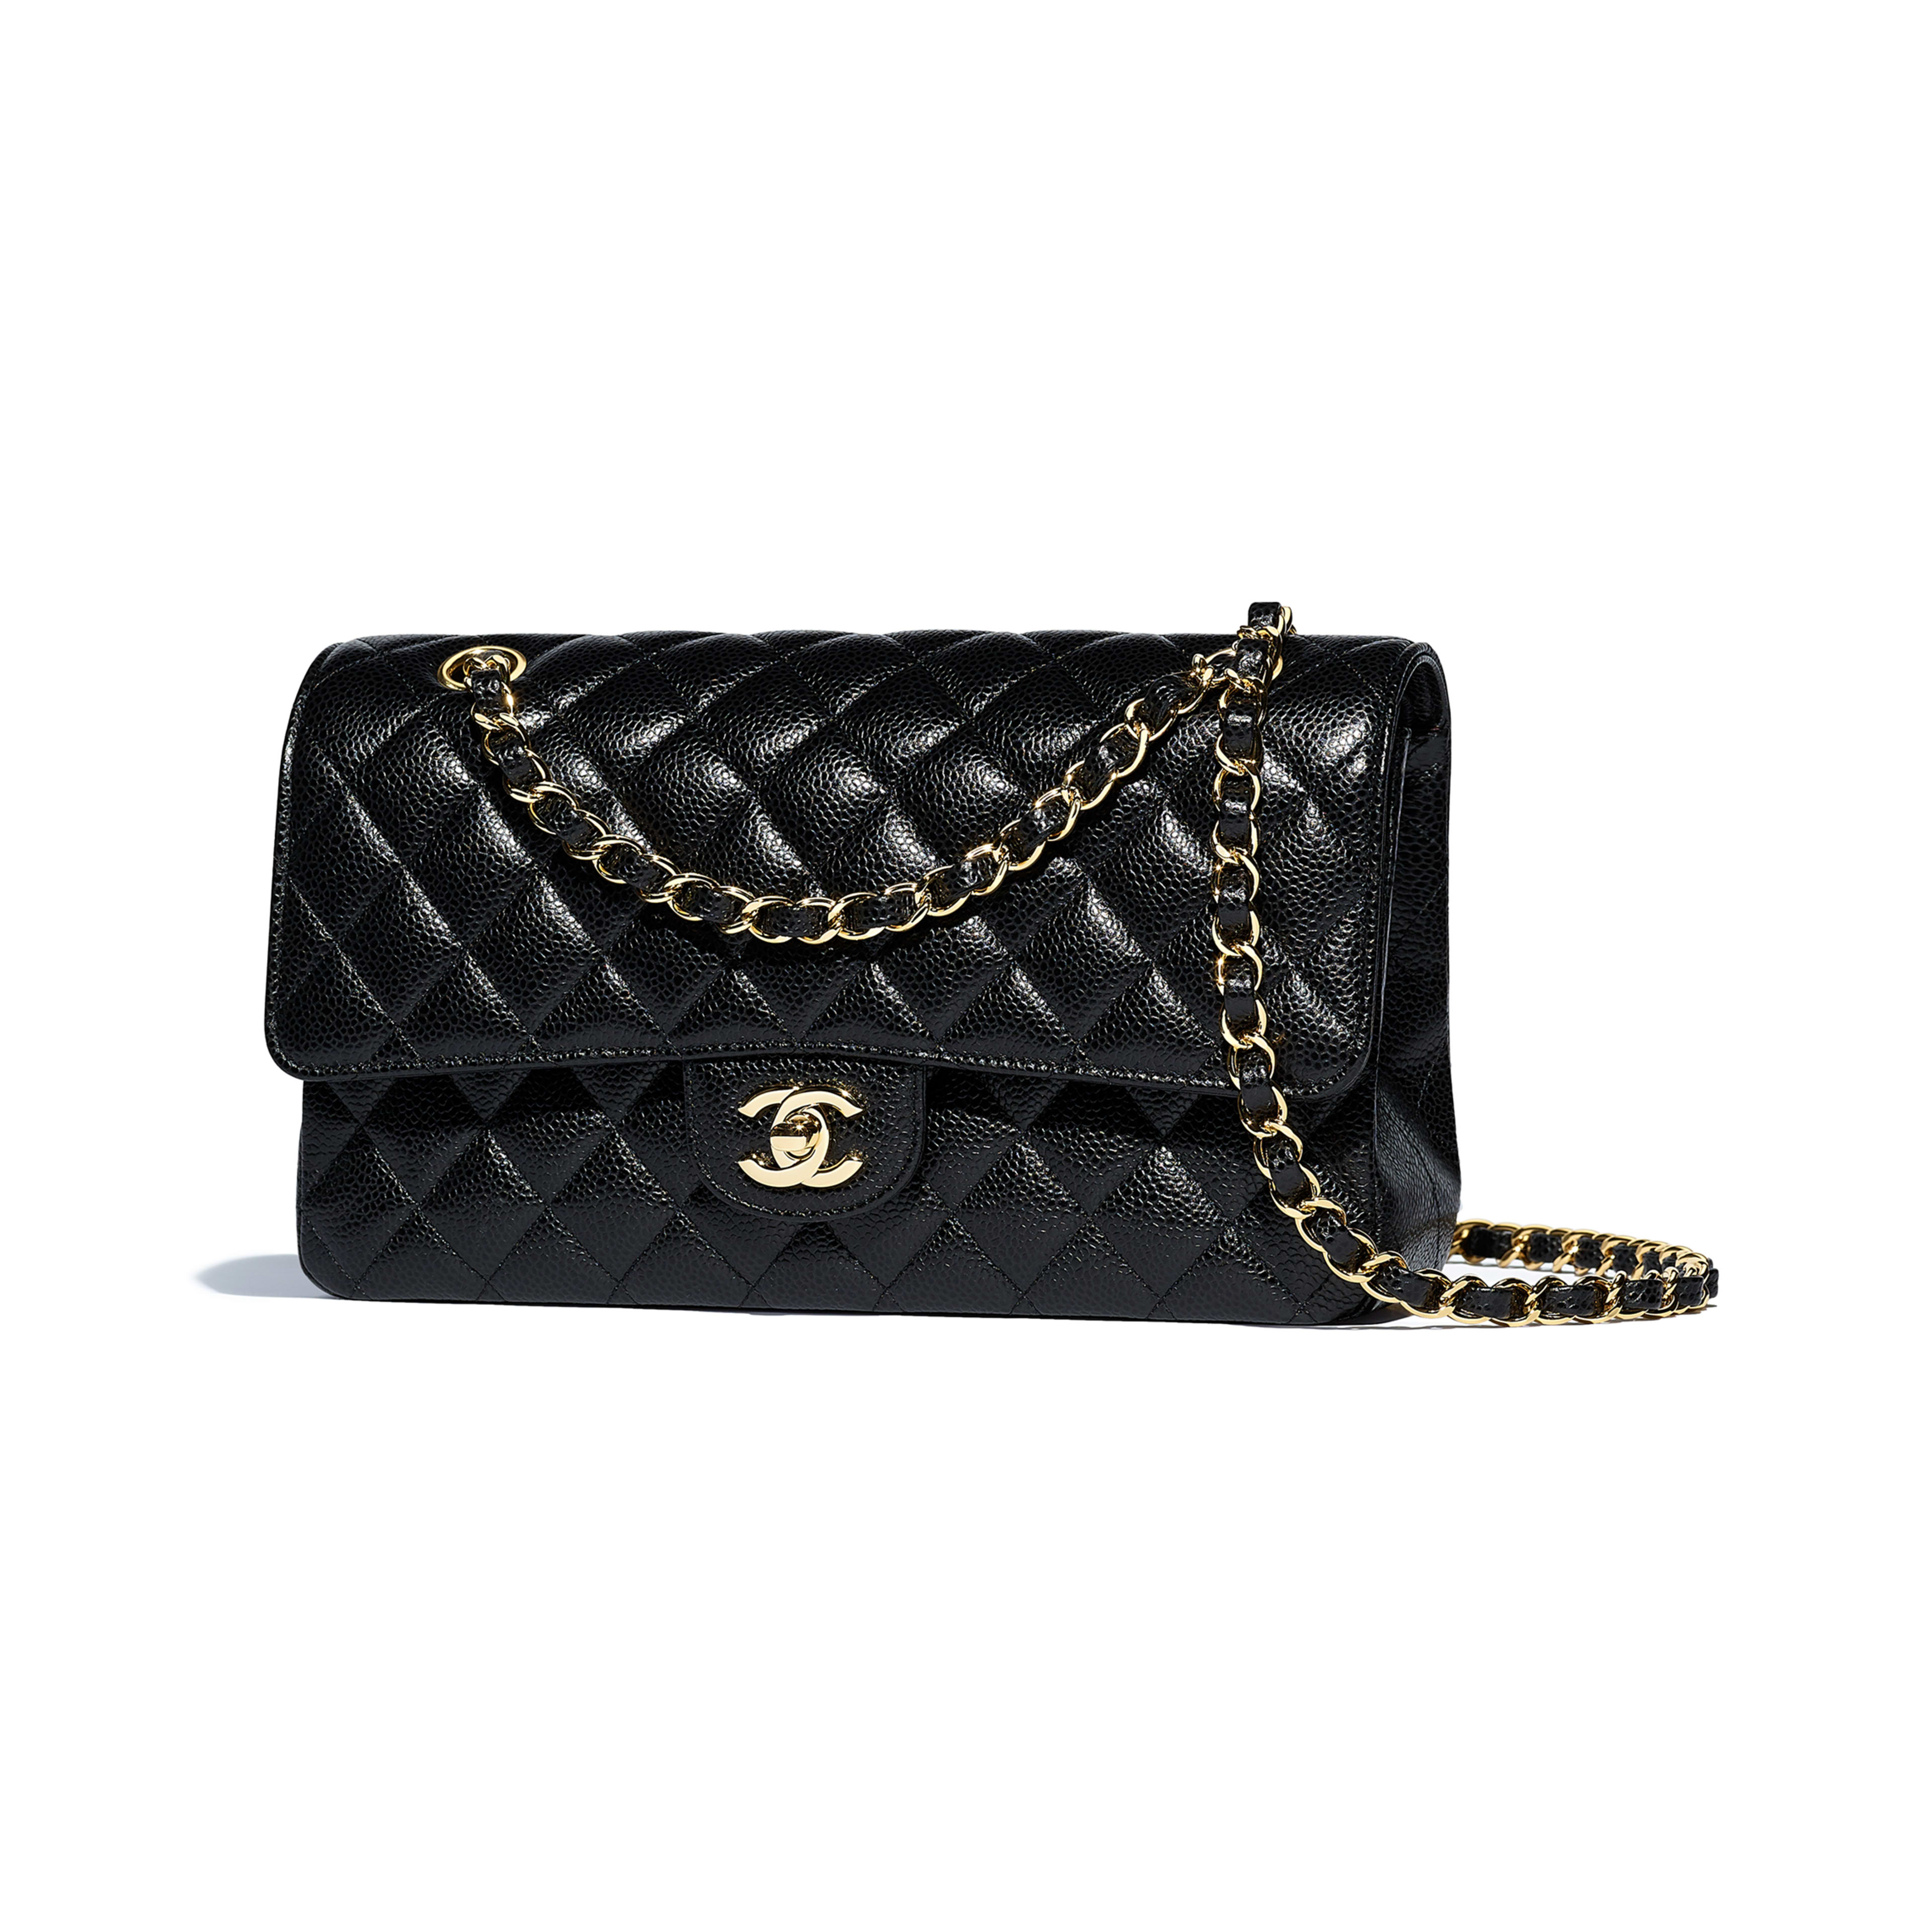 Classic Handbag - Black - Grained Calfskin & Gold-Tone Metal - Other view - see full sized version